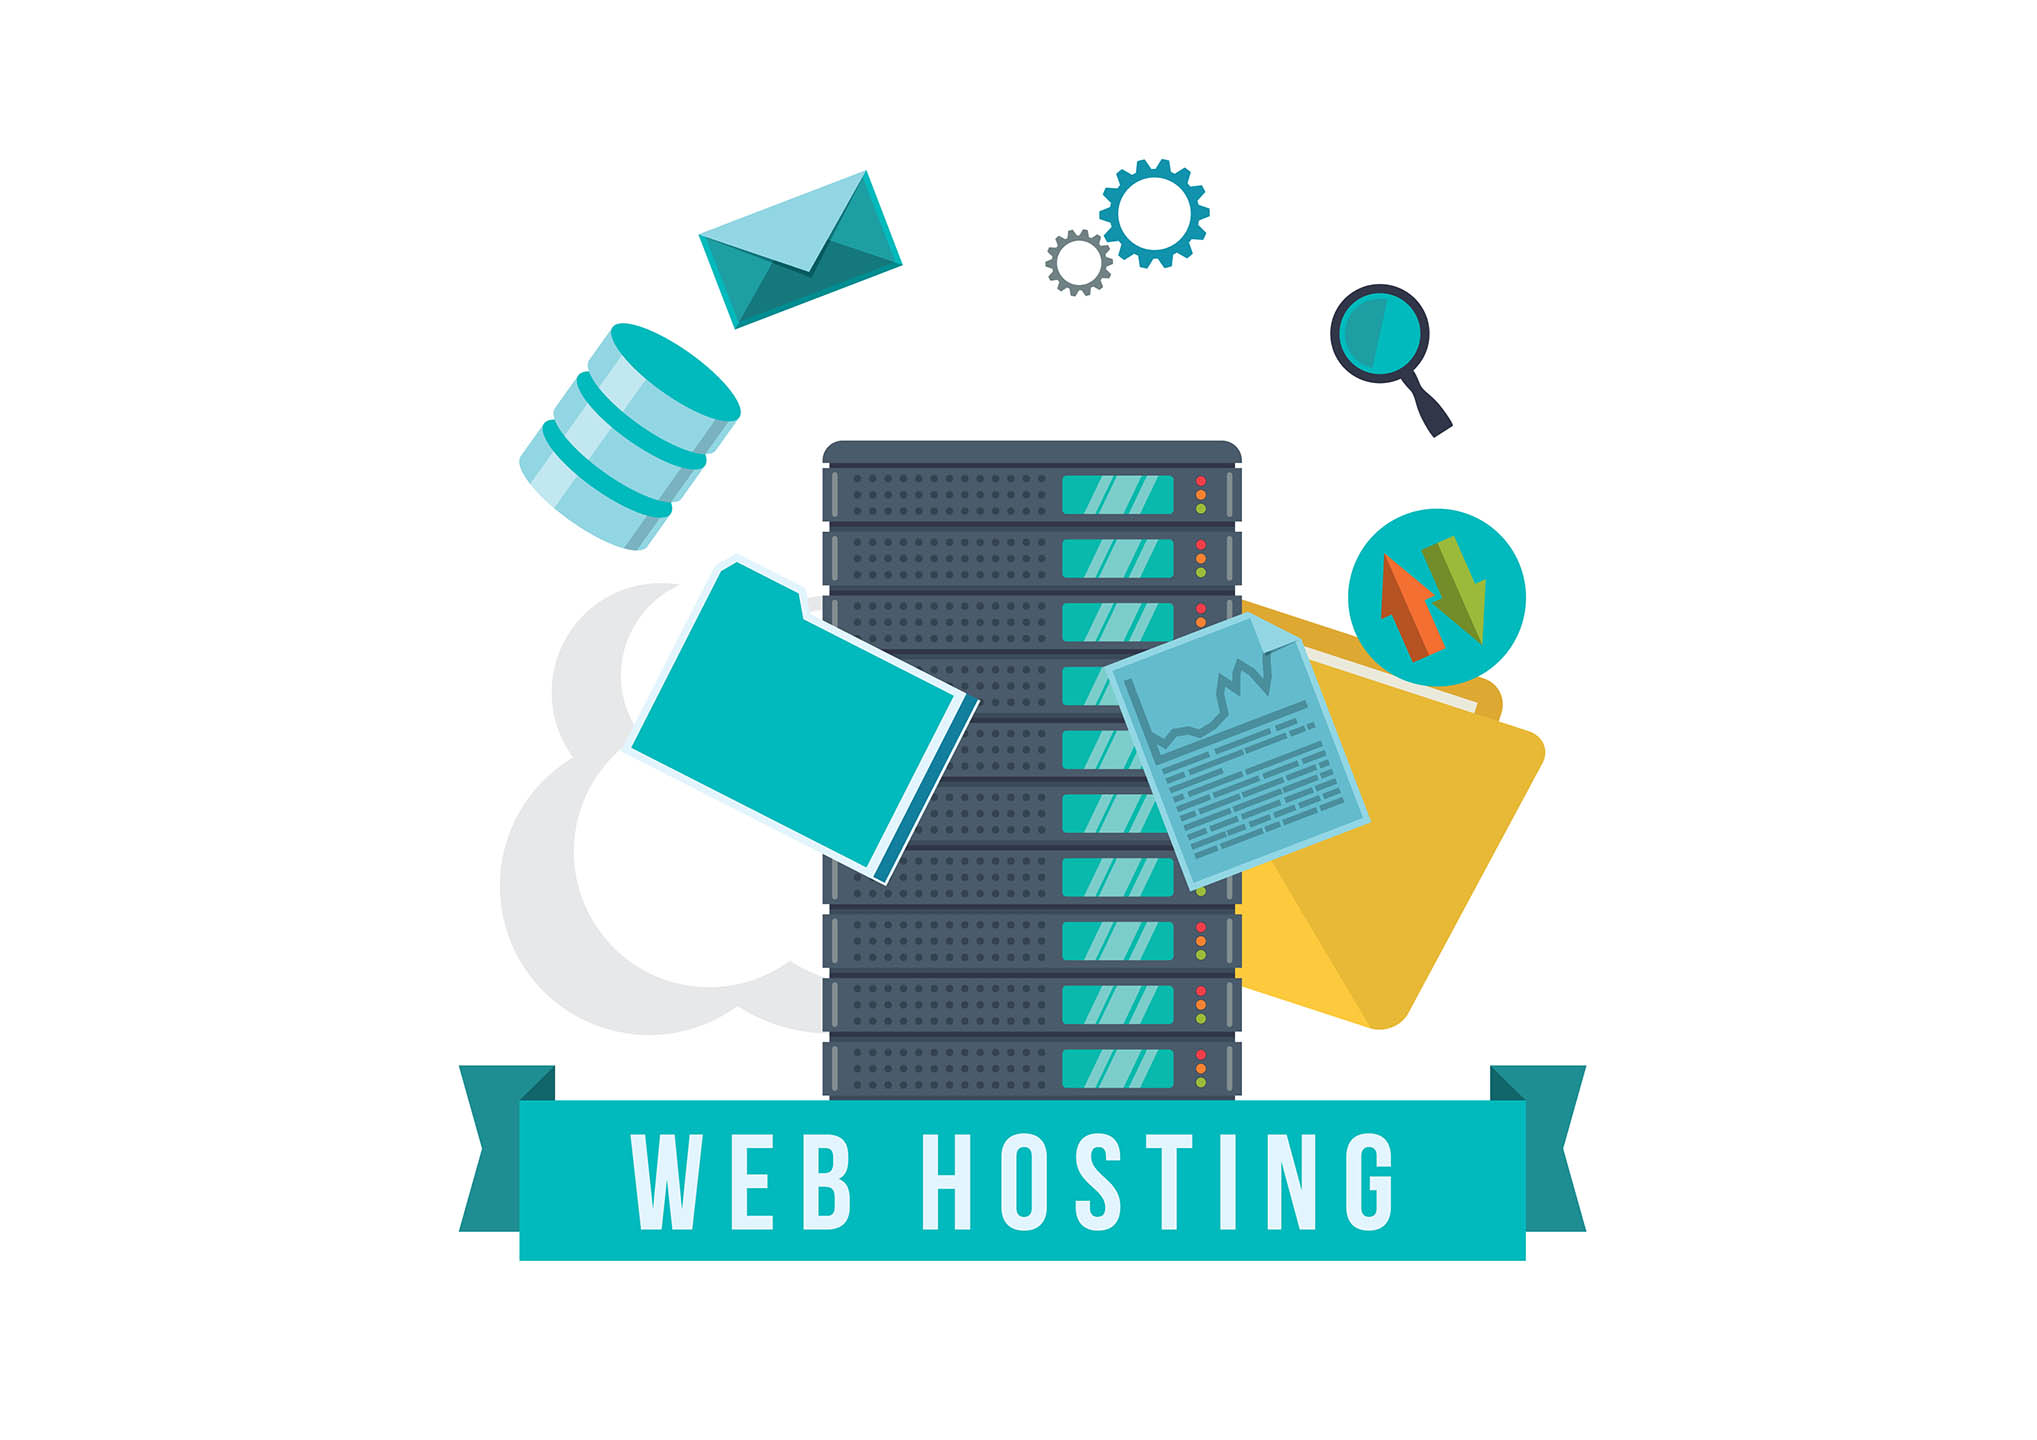 How To Host Your Own Website?